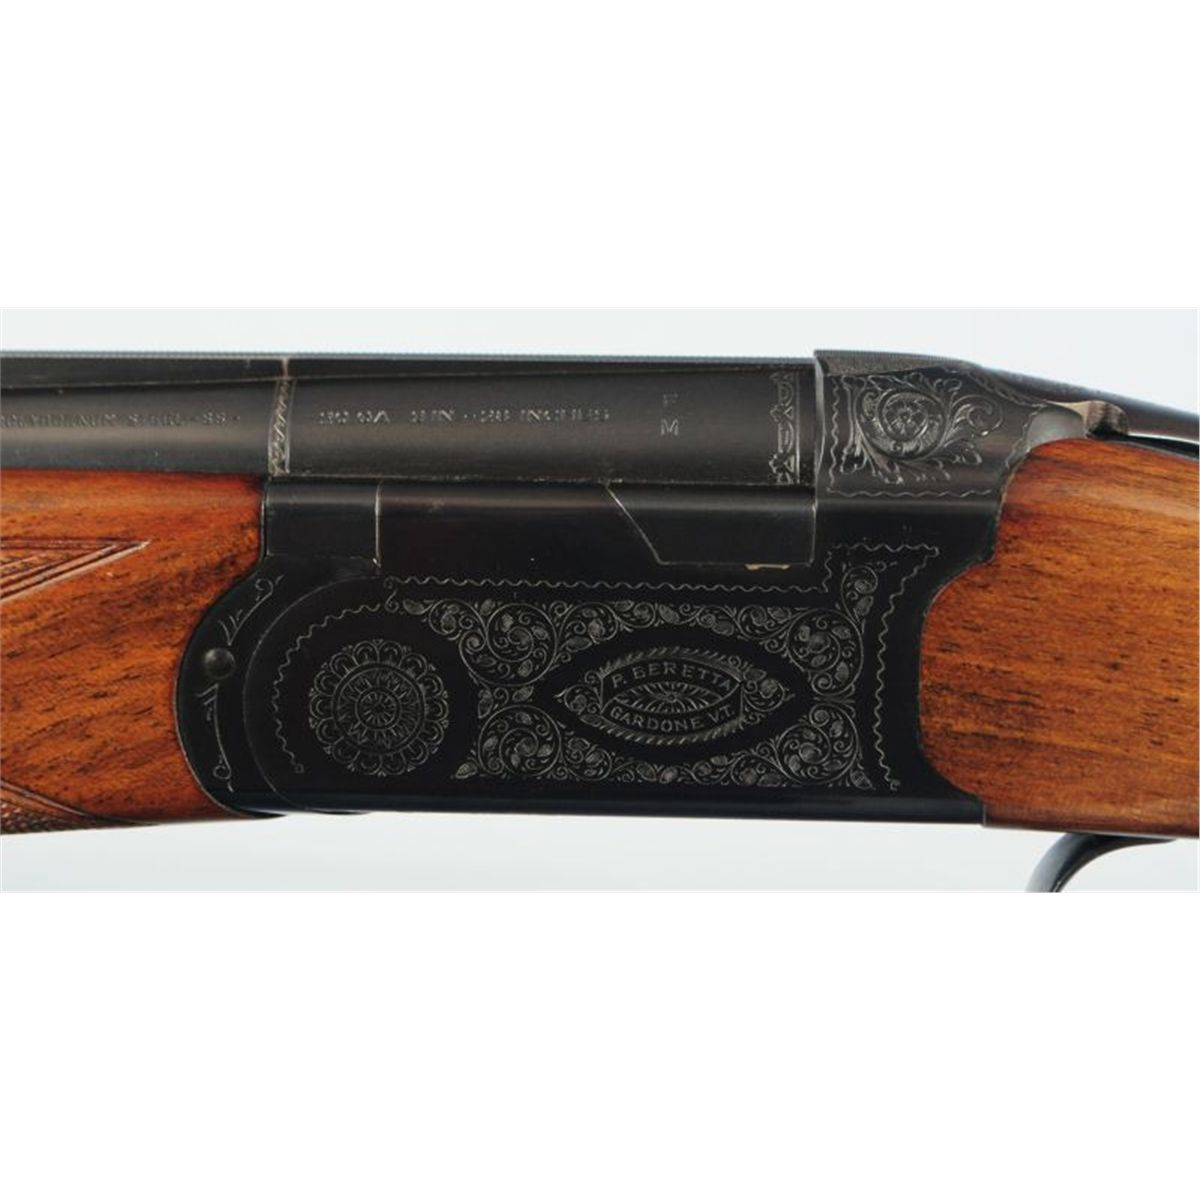 Beretta 20 Gauge OU Shotgun Extra Barrel Set FFL